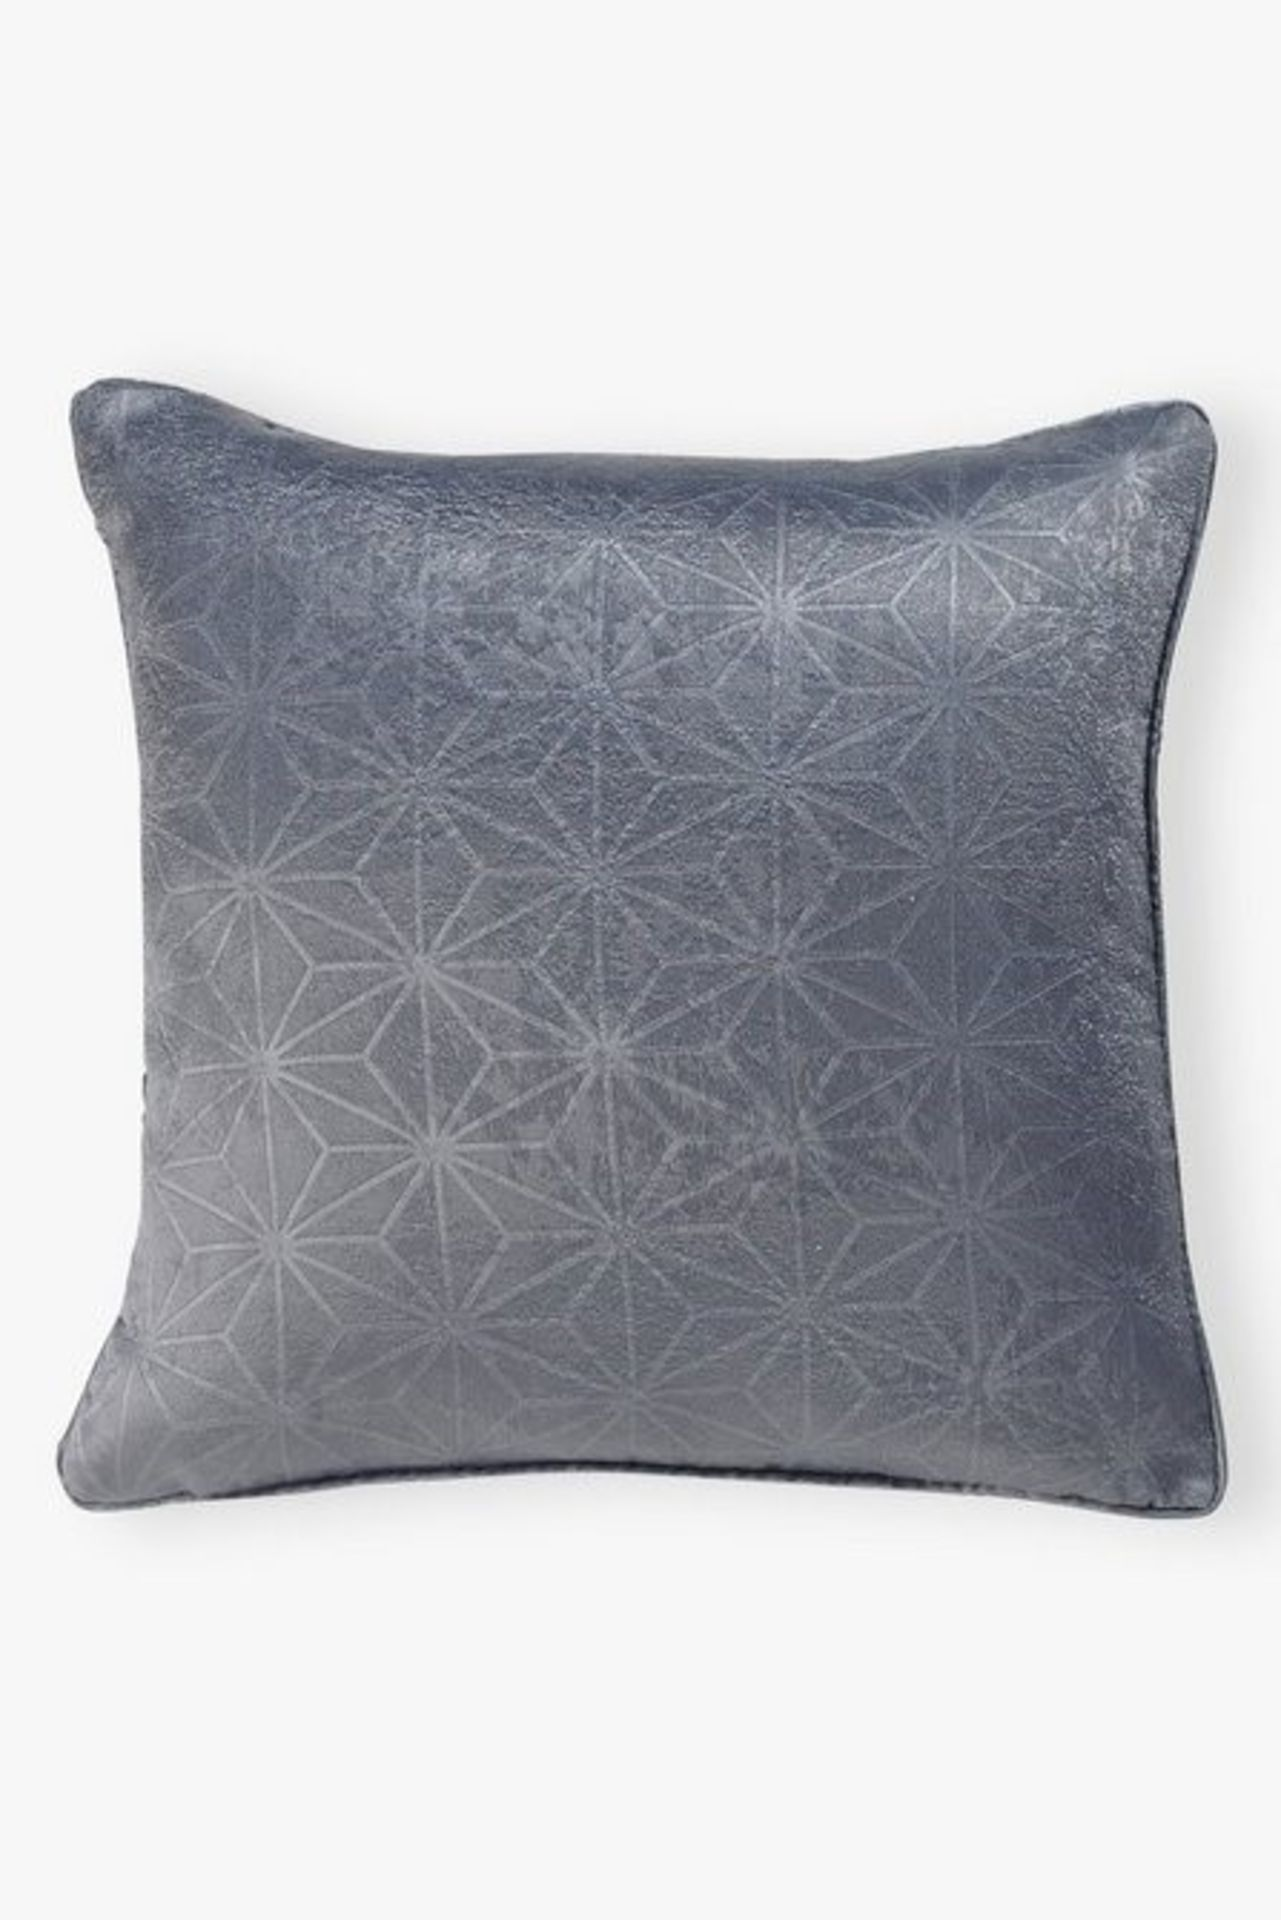 Lot 39 - 1 AS NEW BAGGED GEM CUSHION COVER IN GREY (PUBLIC VIEWING AVAILABLE)